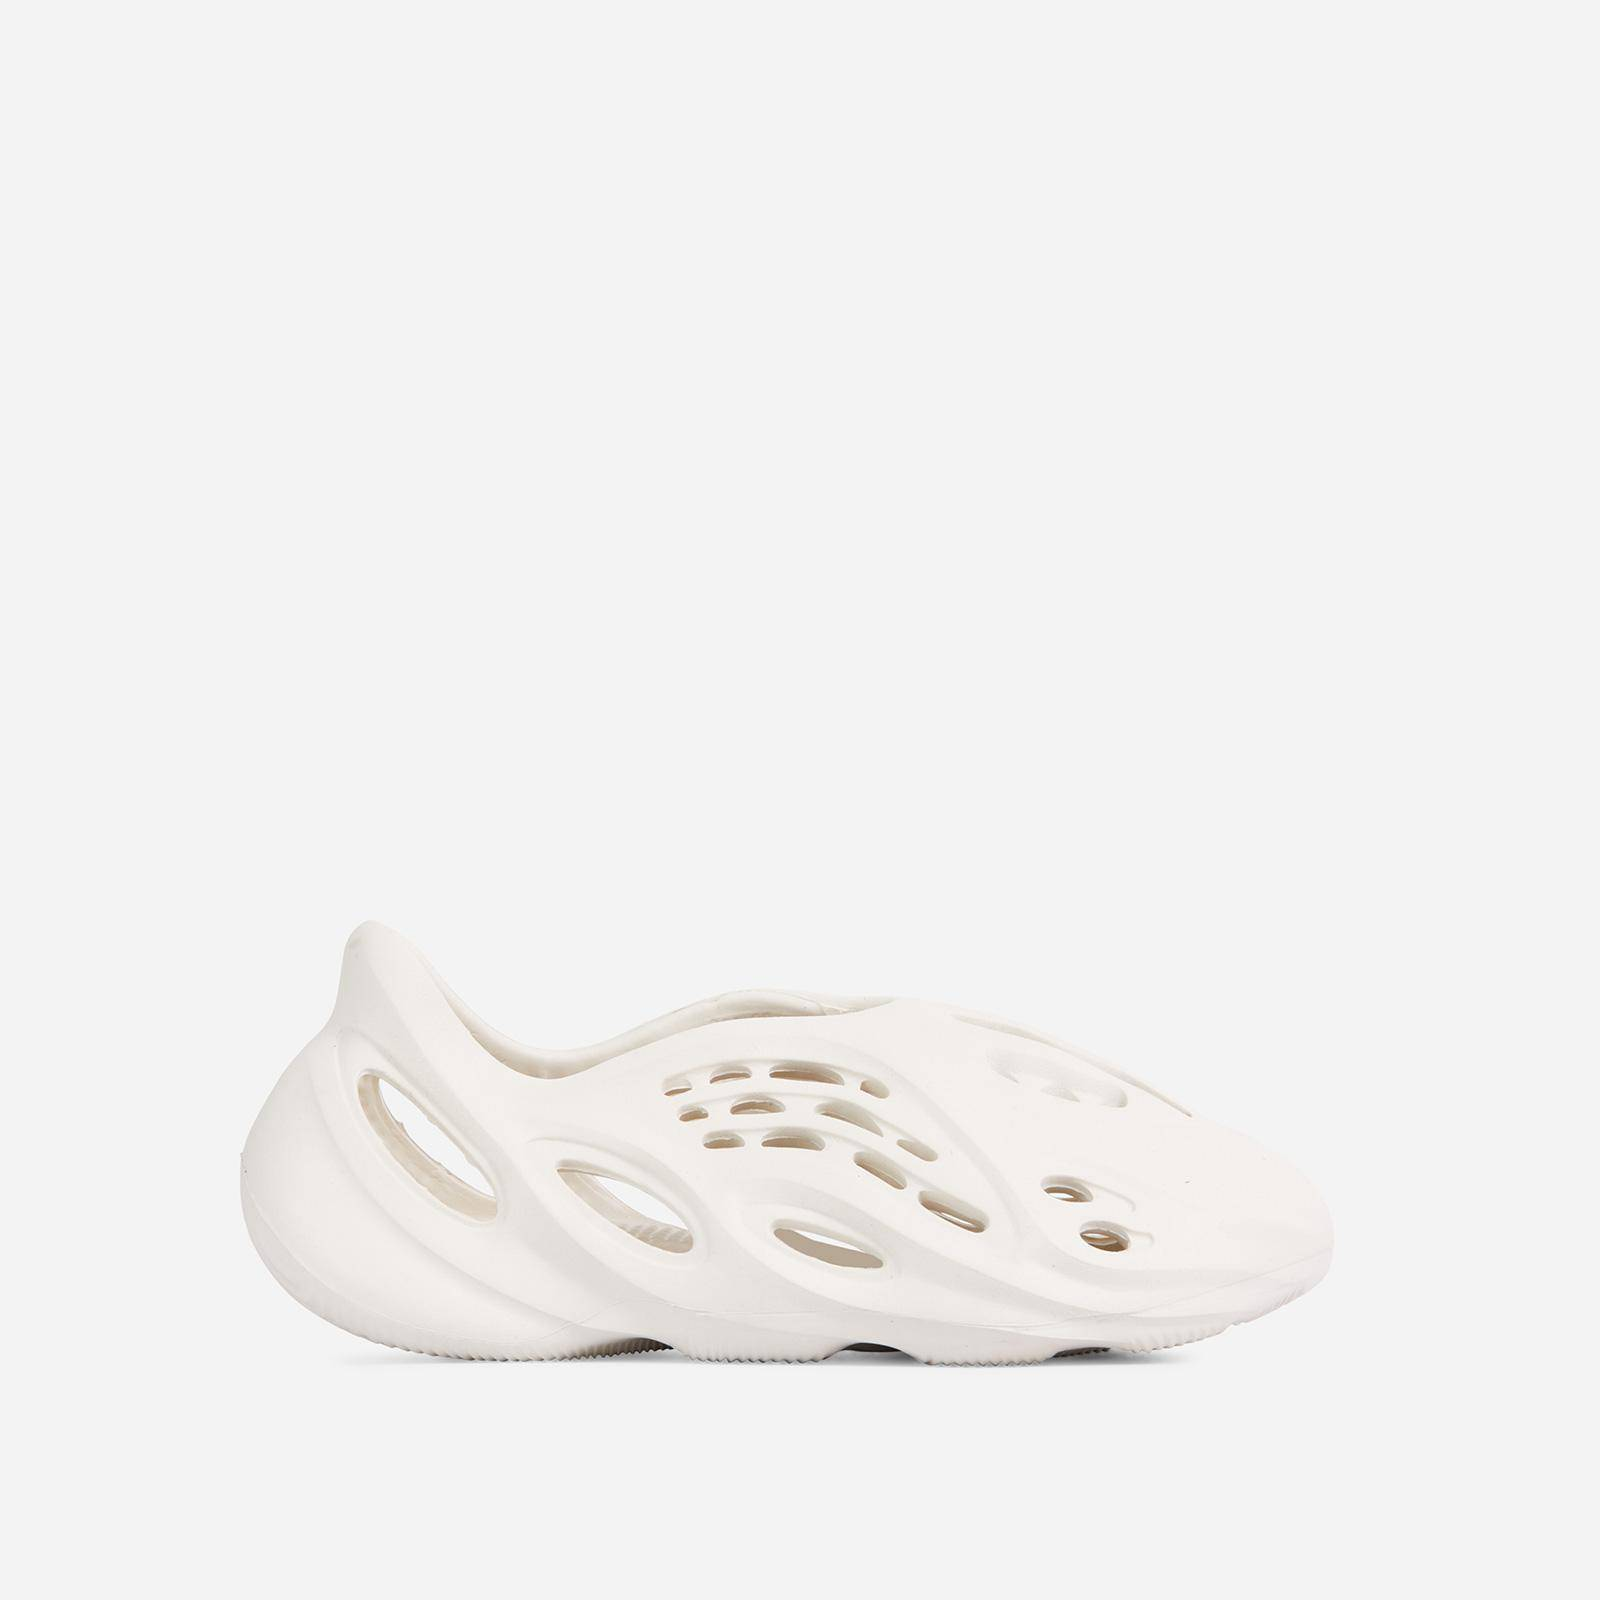 EGO Super-Bass Cut Out Detail Slip On In Off White Rubber, White  - female - Size: 7